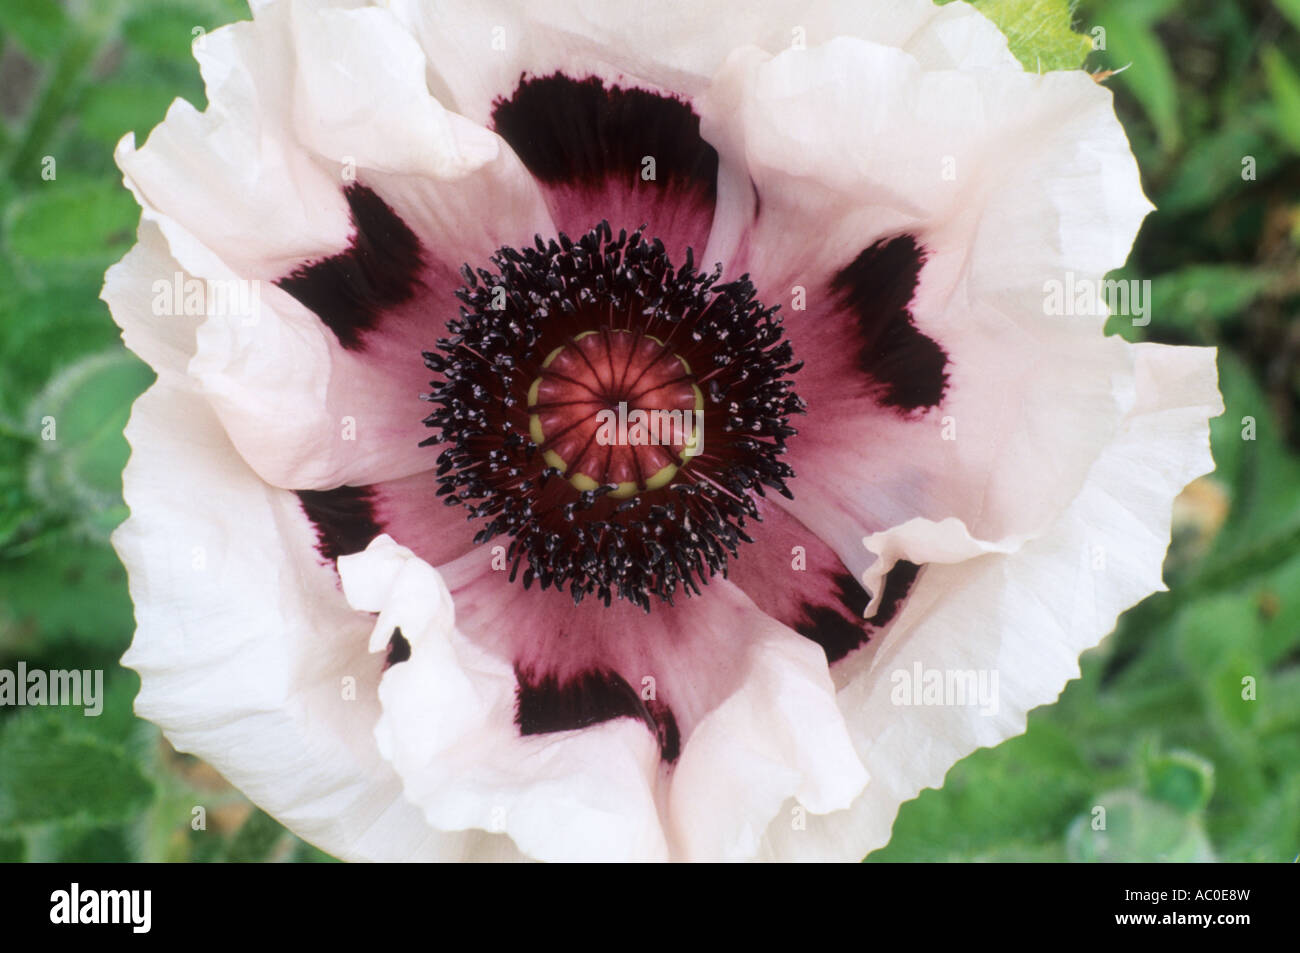 Papaver orientale perrys white oriental poppy white flower papaver orientale perrys white oriental poppy white flower purple centre garden plant poppies flowers plants mightylinksfo